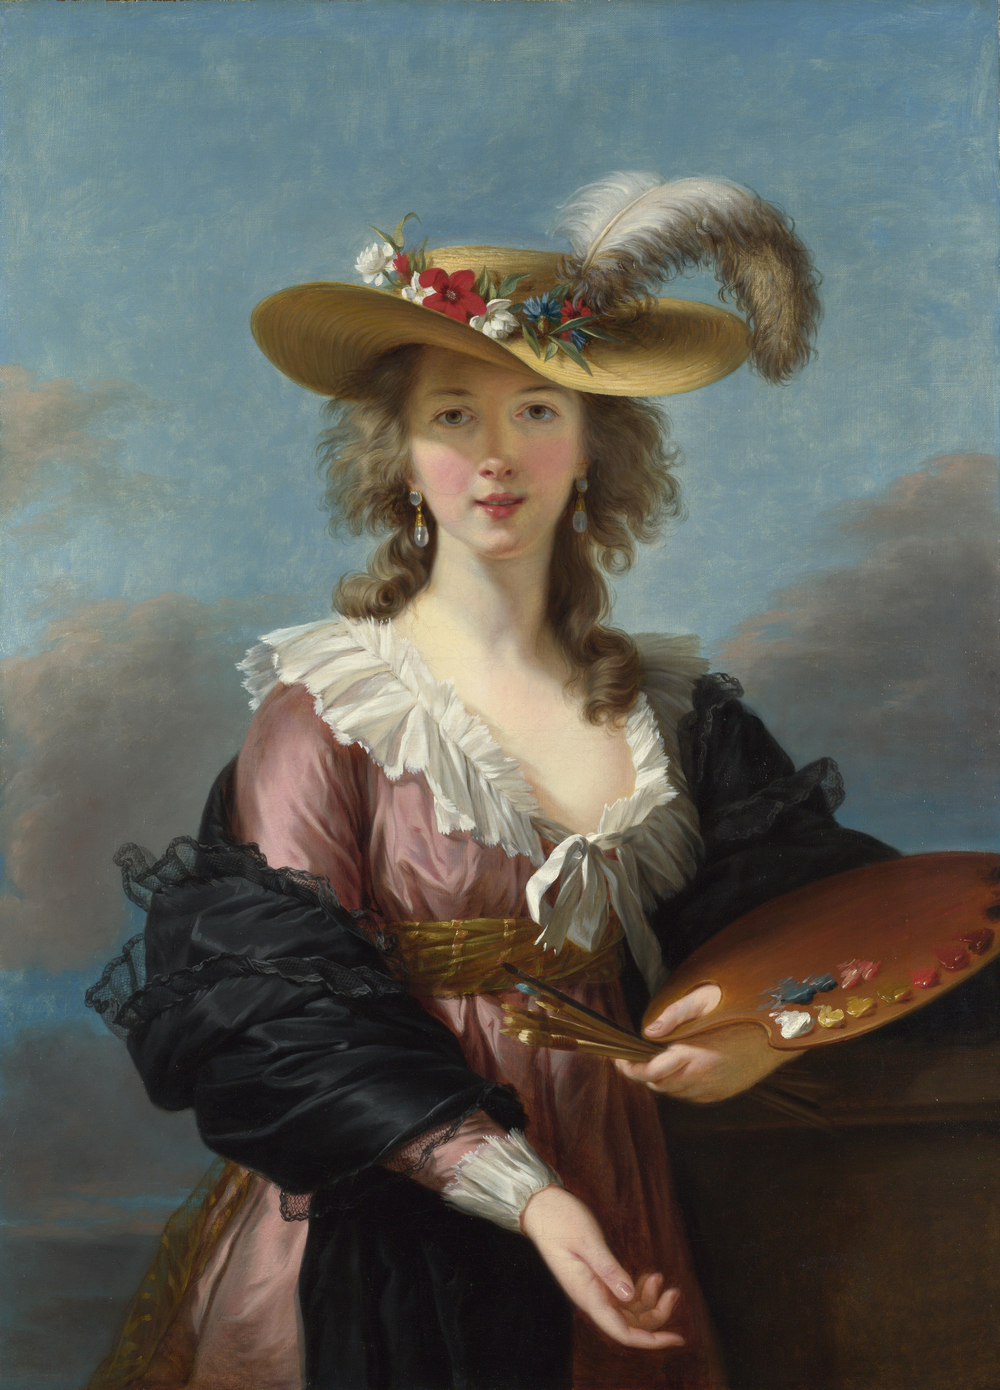 Self Portrait in a Straw Hat, 1782